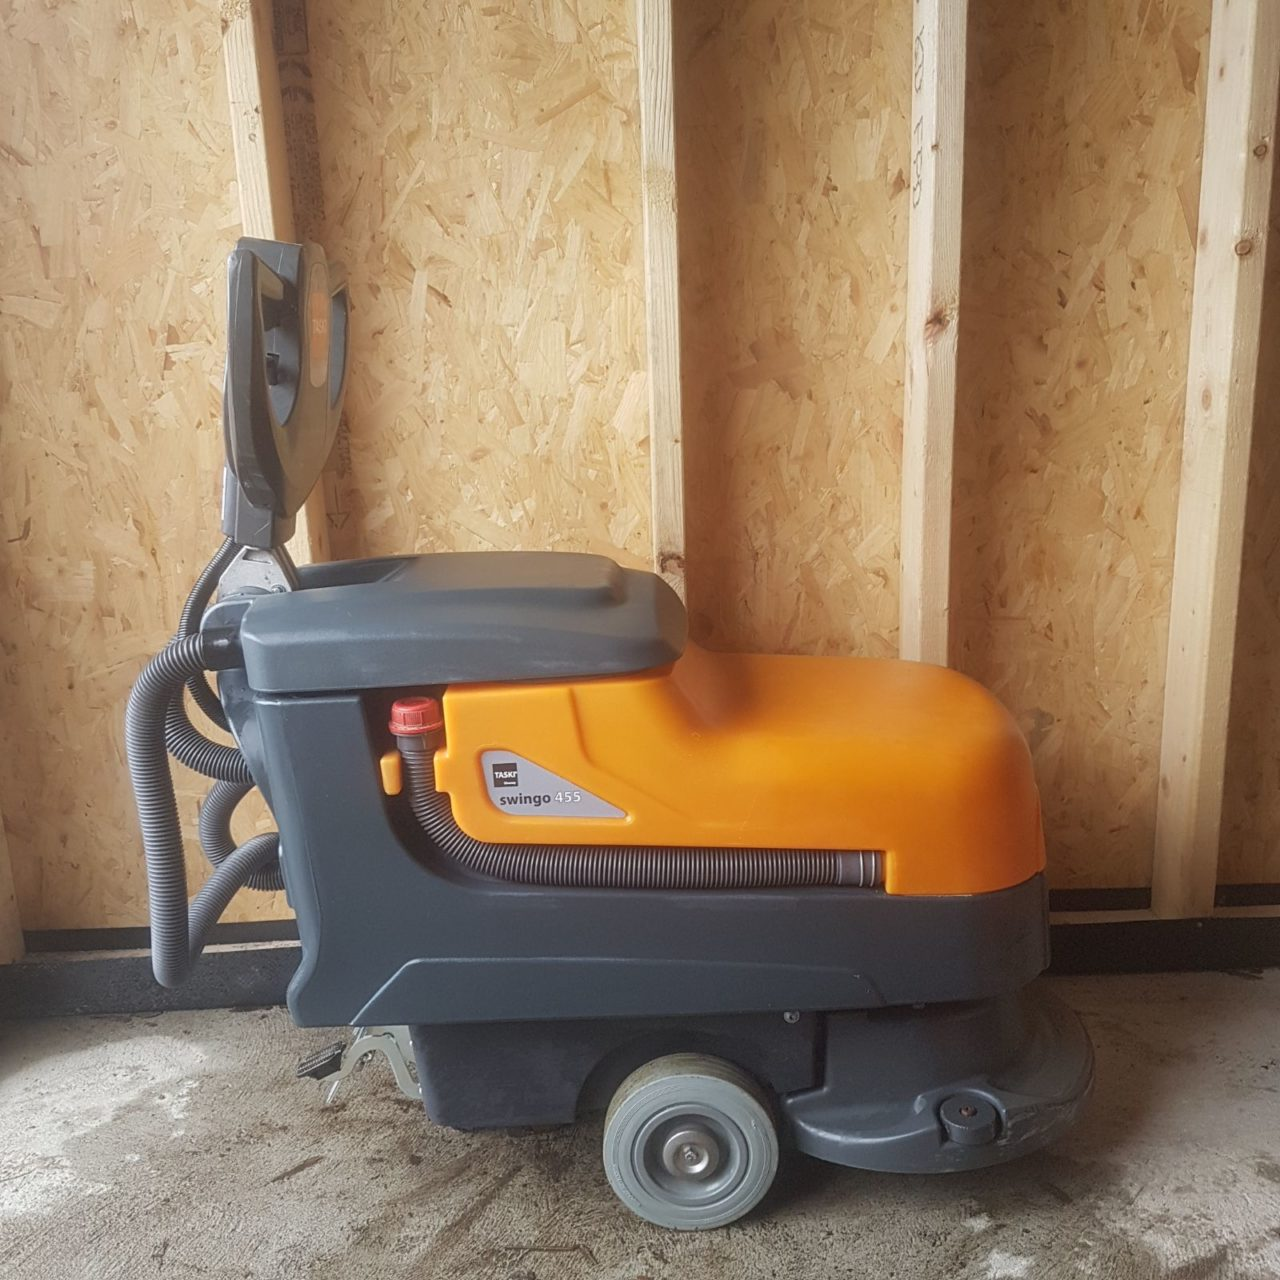 Floor Scrubber Dryer Machine – Taski Swingo 455